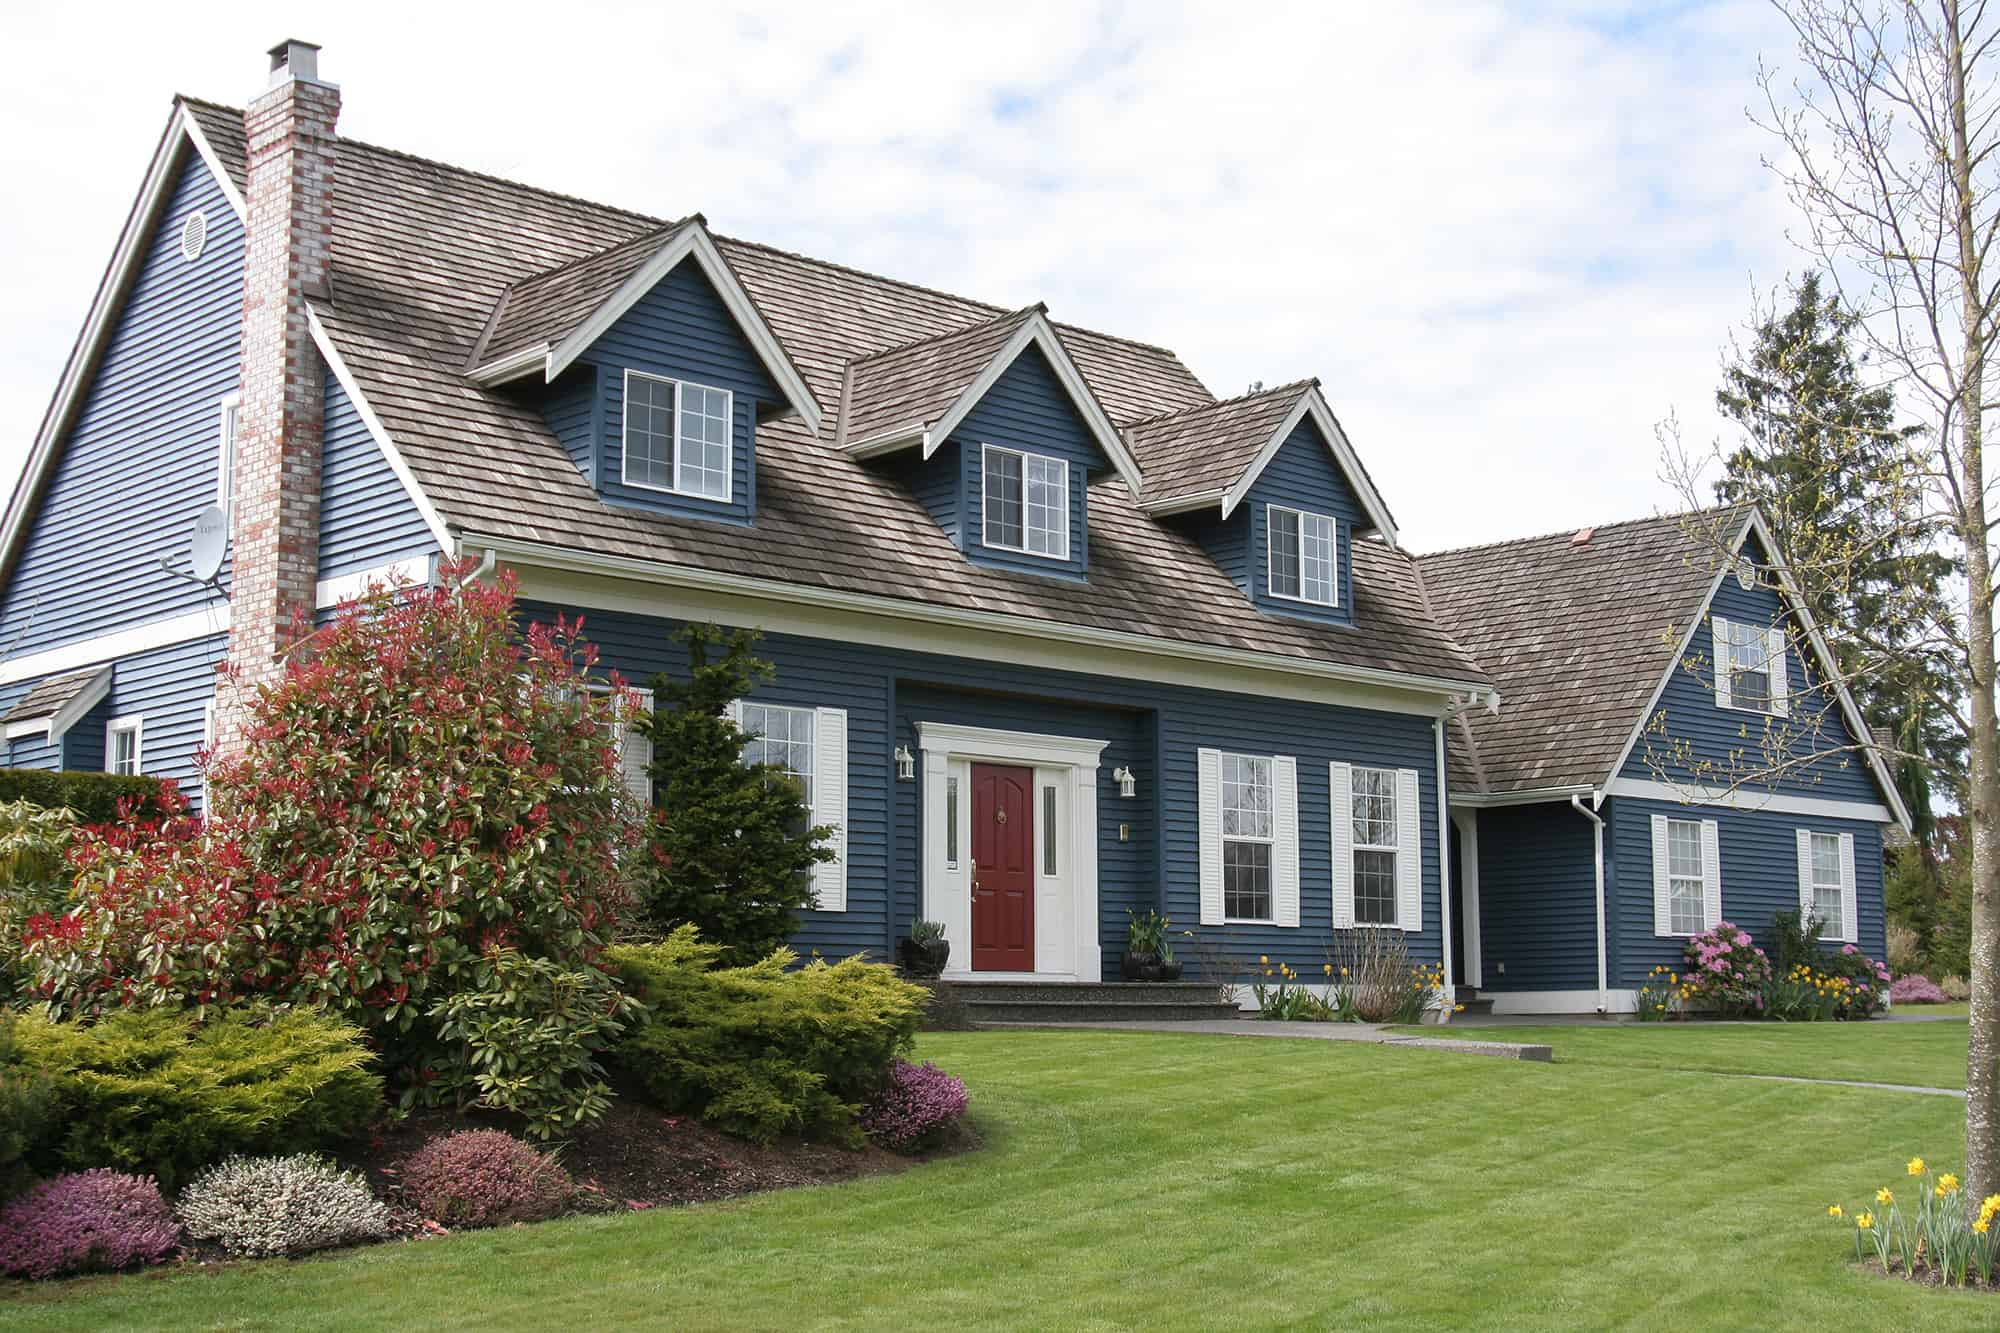 Top Selling Vinyl Siding Colors 5 Different Looks Kp